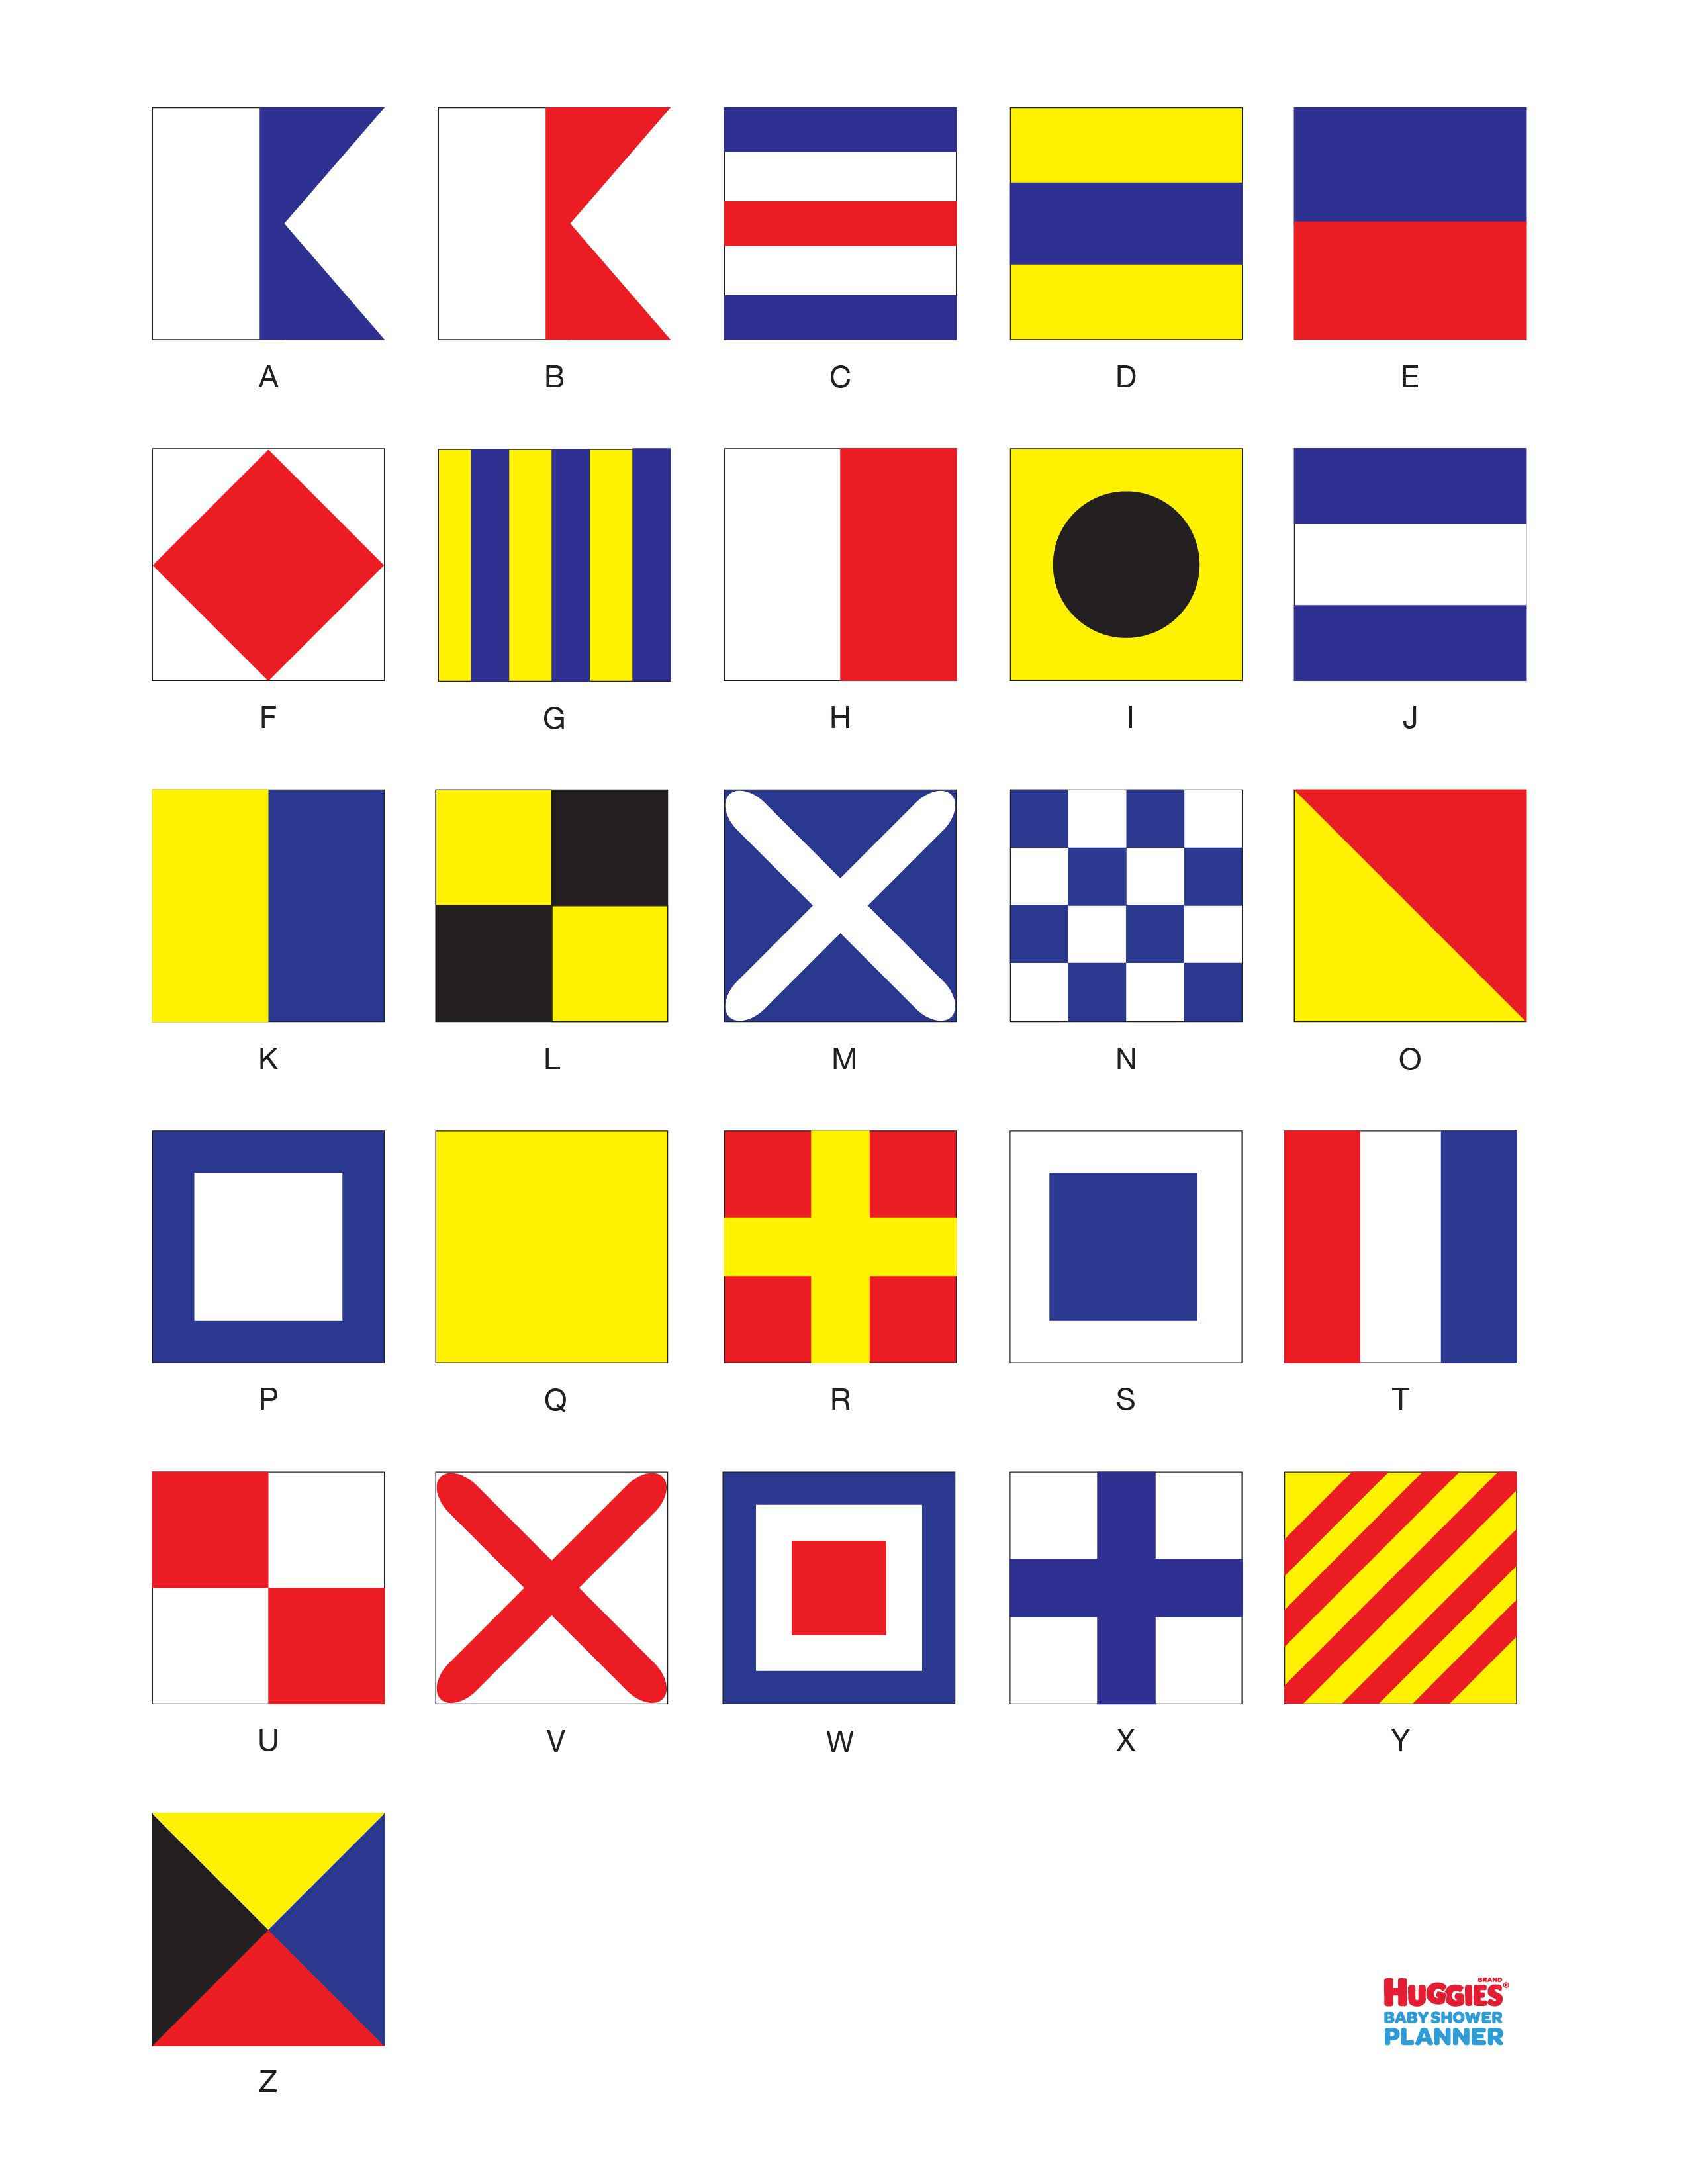 Decorative Tile Wall Hanging CafePress Signal Flags White Framed Tile